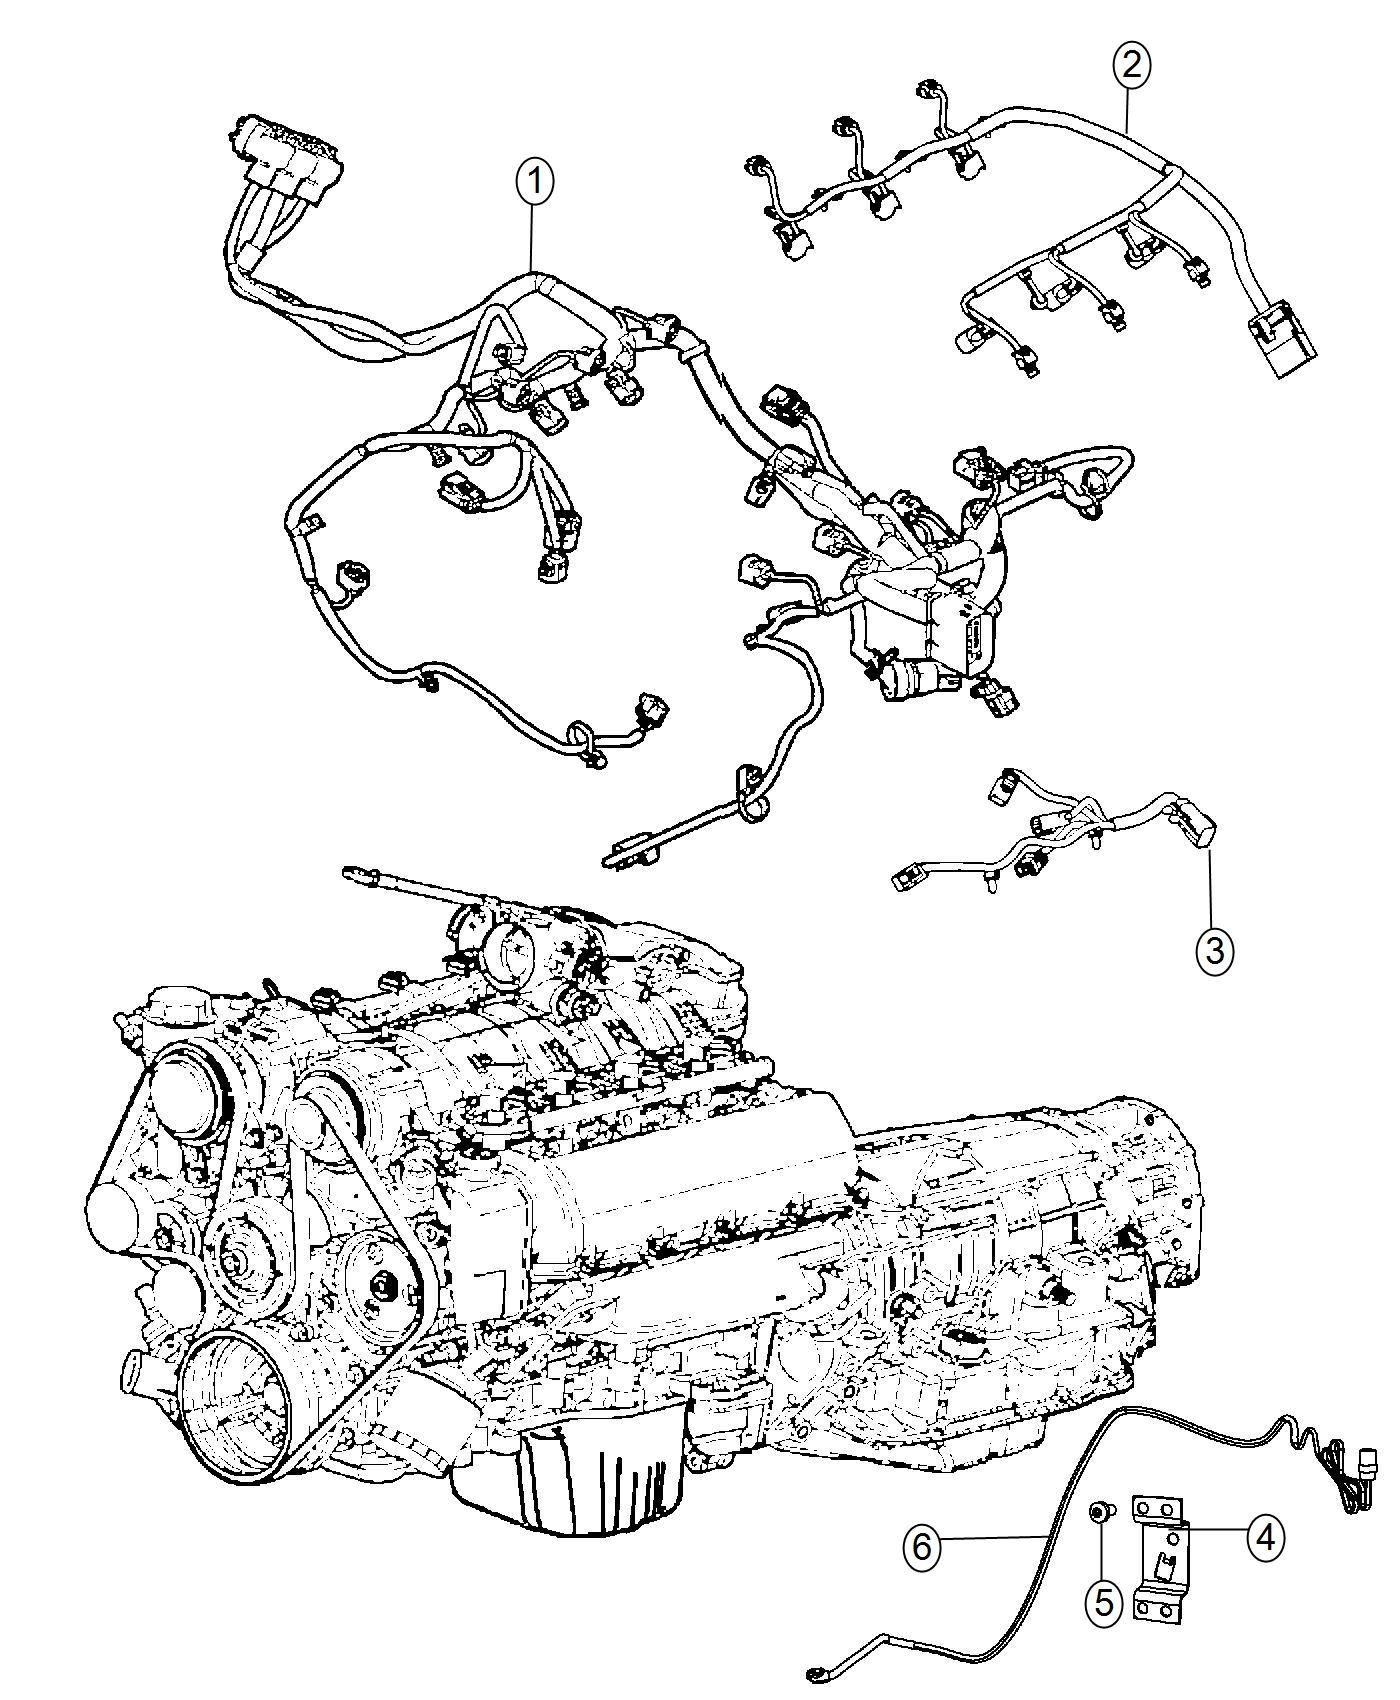 Engine Diagram On A 2010 Chrysler town and Country 3.8lt Chrysler town & Country Wiring Engine Vvt Ae Of Engine Diagram On A 2010 Chrysler town and Country 3.8lt